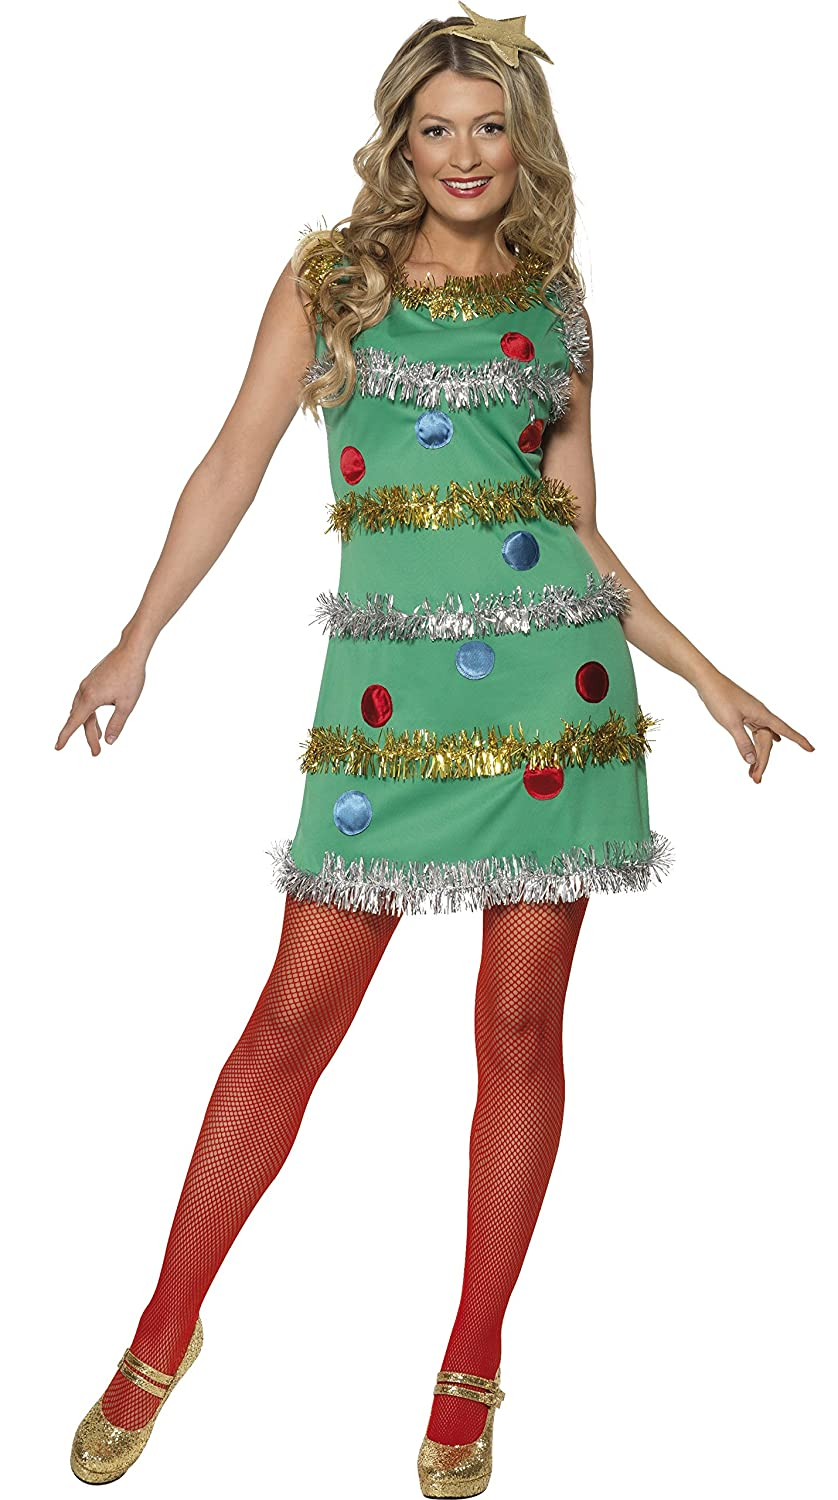 3d2cd76069b8 Green tank dress has gold and silver tinsel attached to the front. Red and  blue glitter ornament shapes are printed on the front